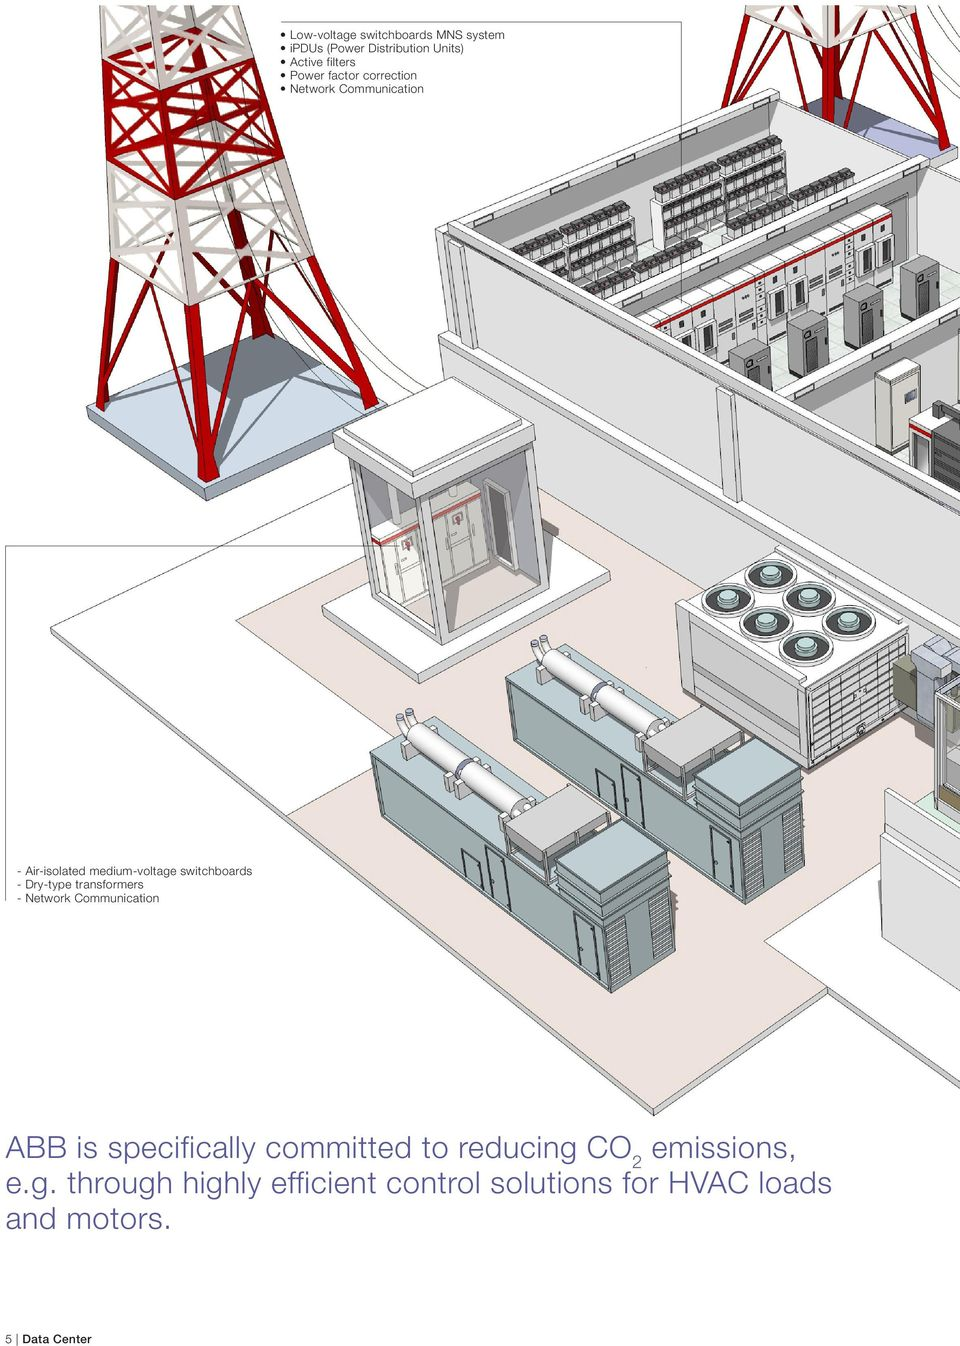 Dry-type transformers - Network Communication ABB is specifically committed to reducing CO2